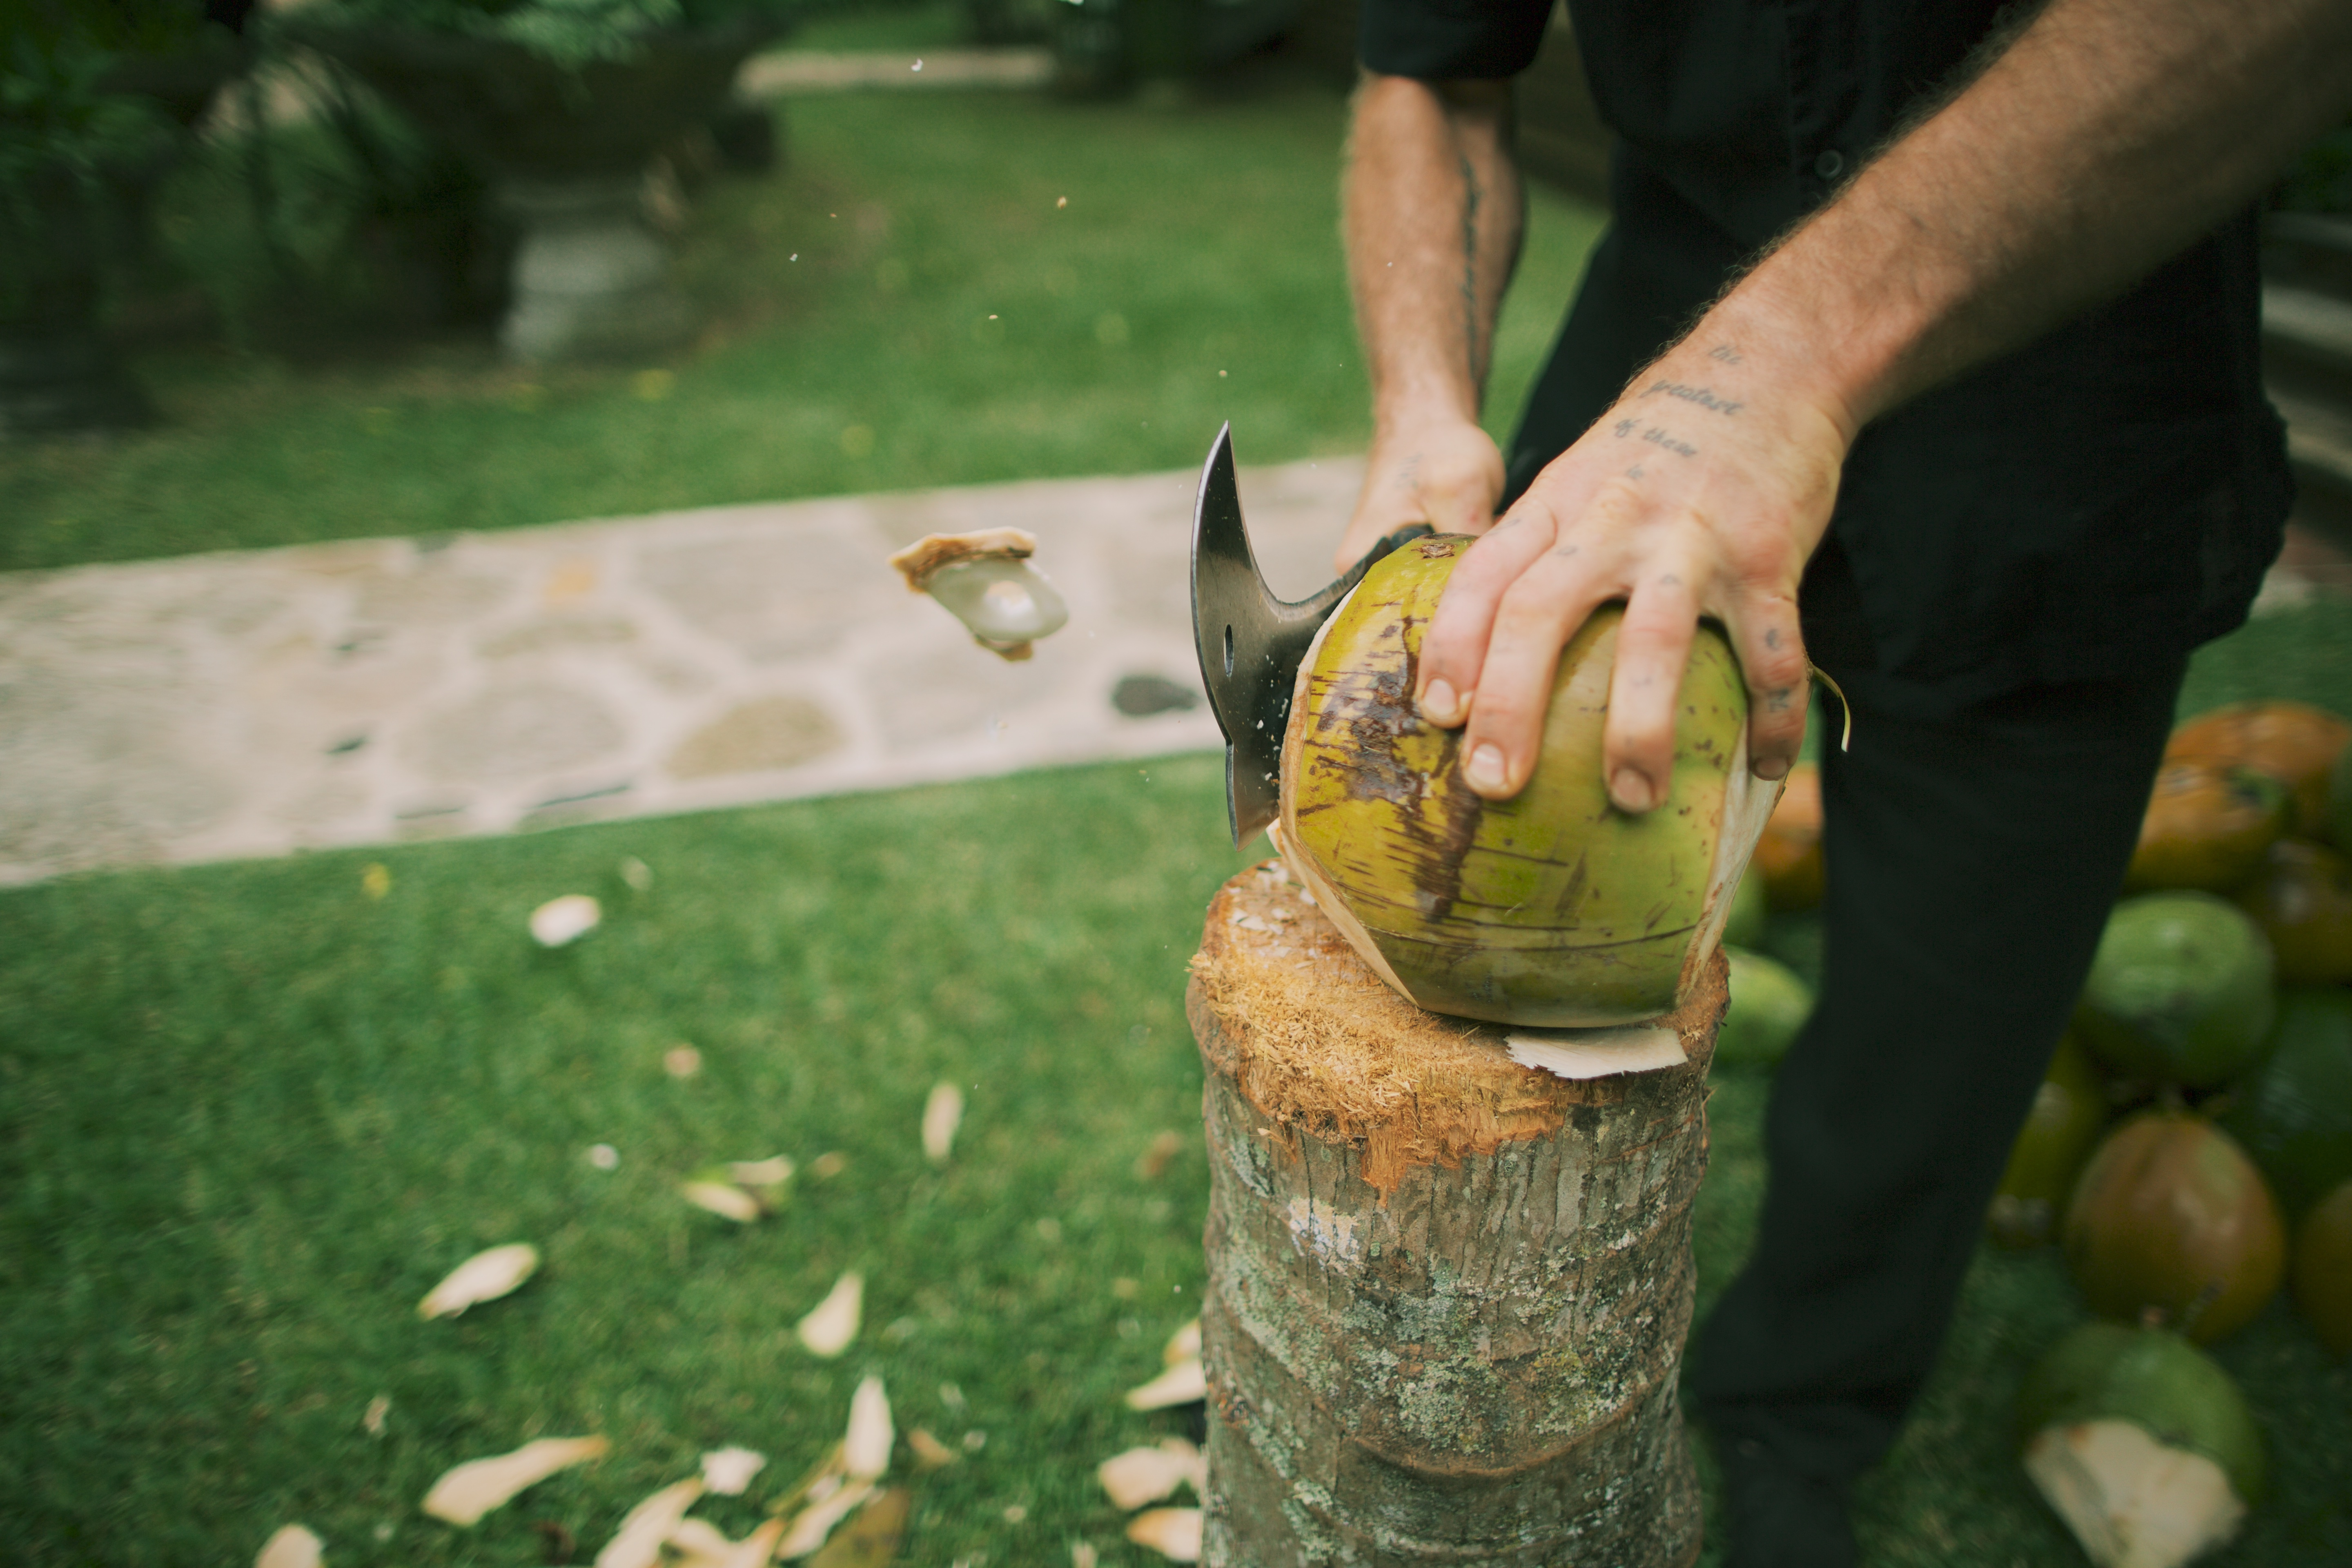 Chopped coconuts